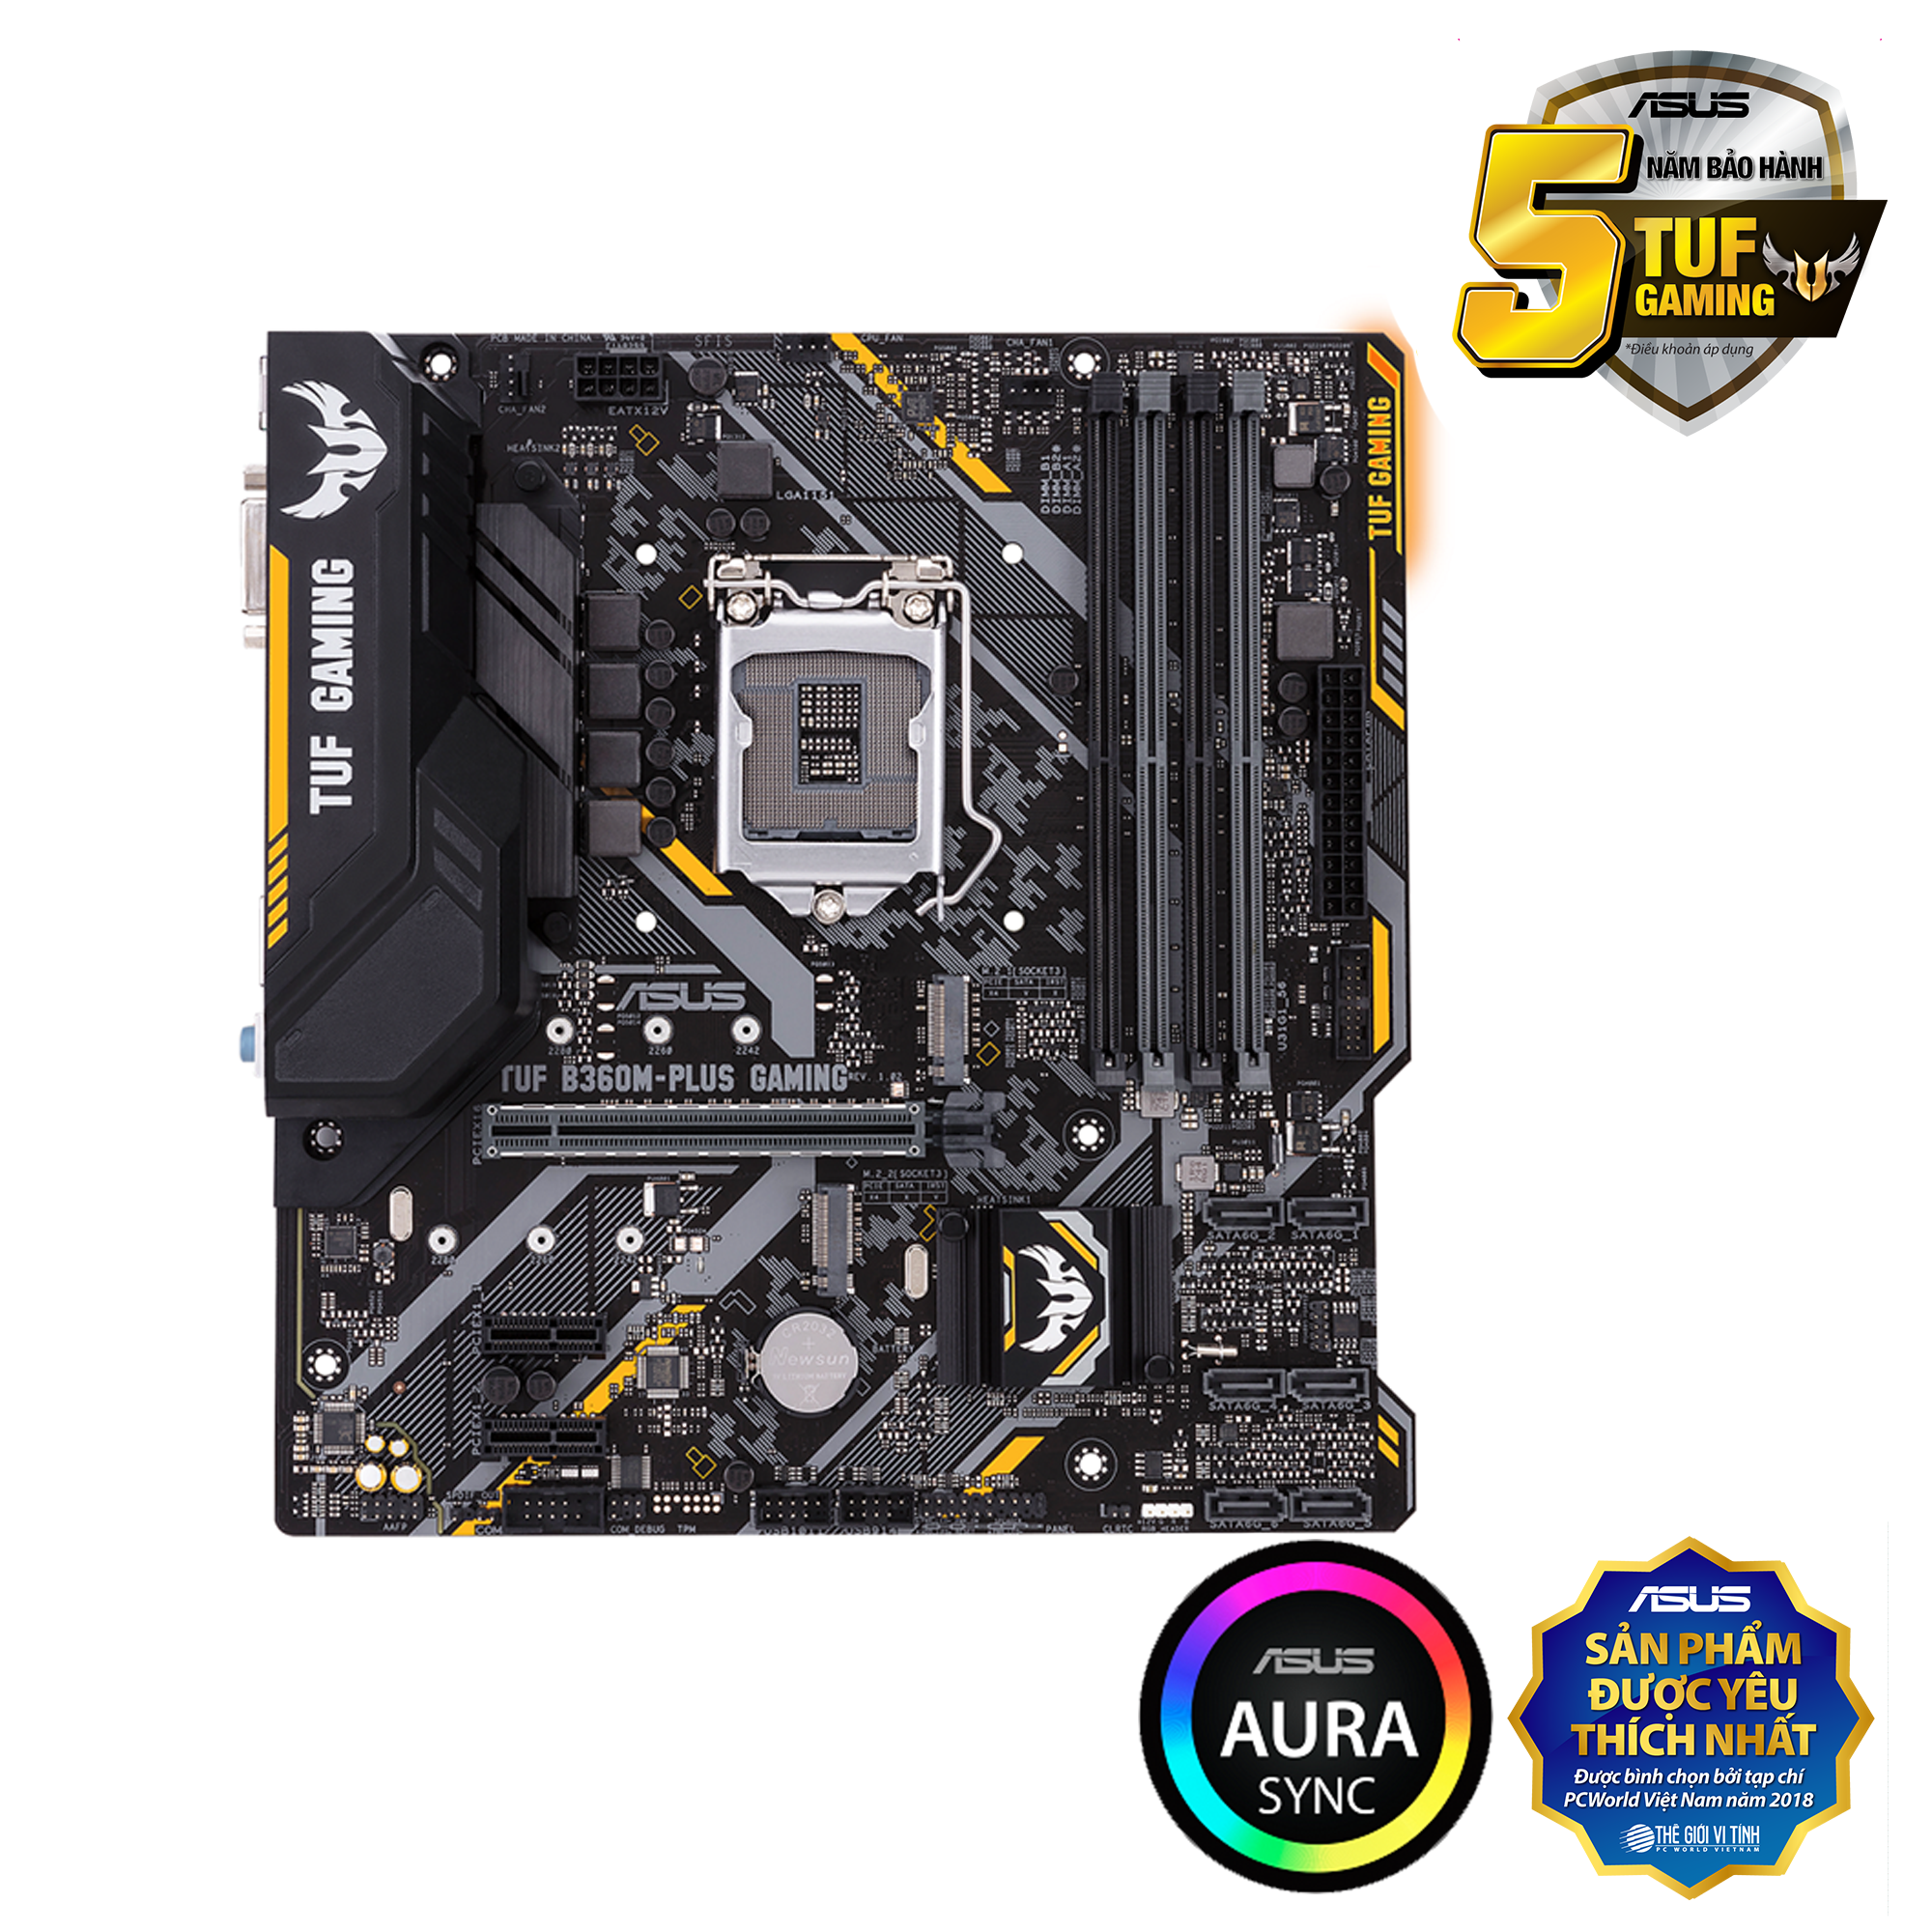 Asus TUF B360M-Plus Gaming LGA 1151v2